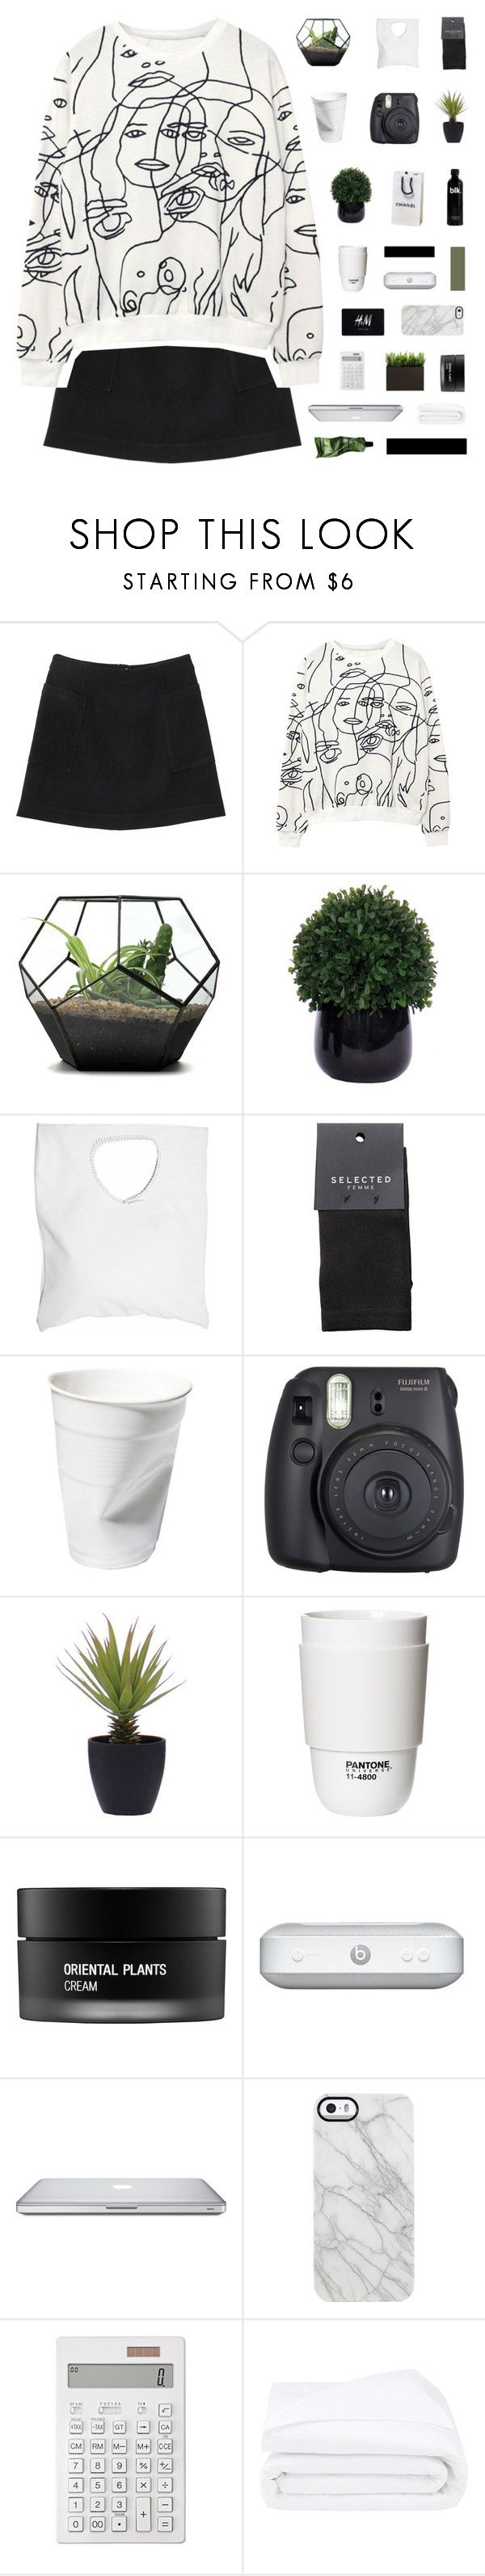 """""""my queen of hearts, meant to be my love"""" by when-you-listen ❤ liked on Polyvore featuring Monki, Lux-Art Silks, Jennifer Haley, SELECTED, Fuji, ROOM COPENHAGEN, H&M, Koh Gen Do, Uncommon and Muji"""